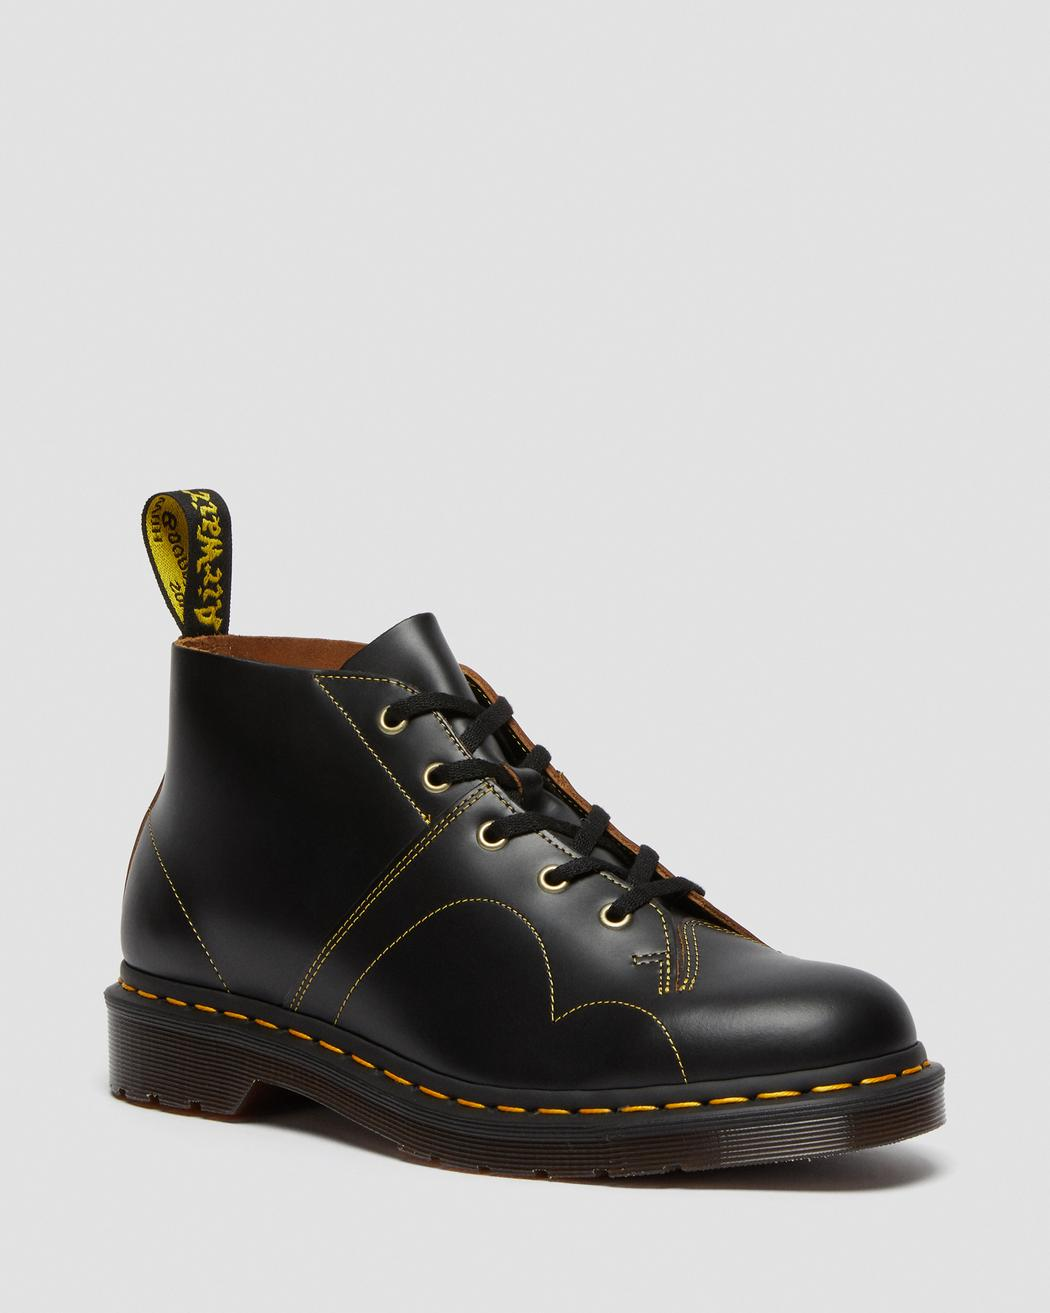 CHURCH LEATHER MONKEY BOOTS DR. MARTENS